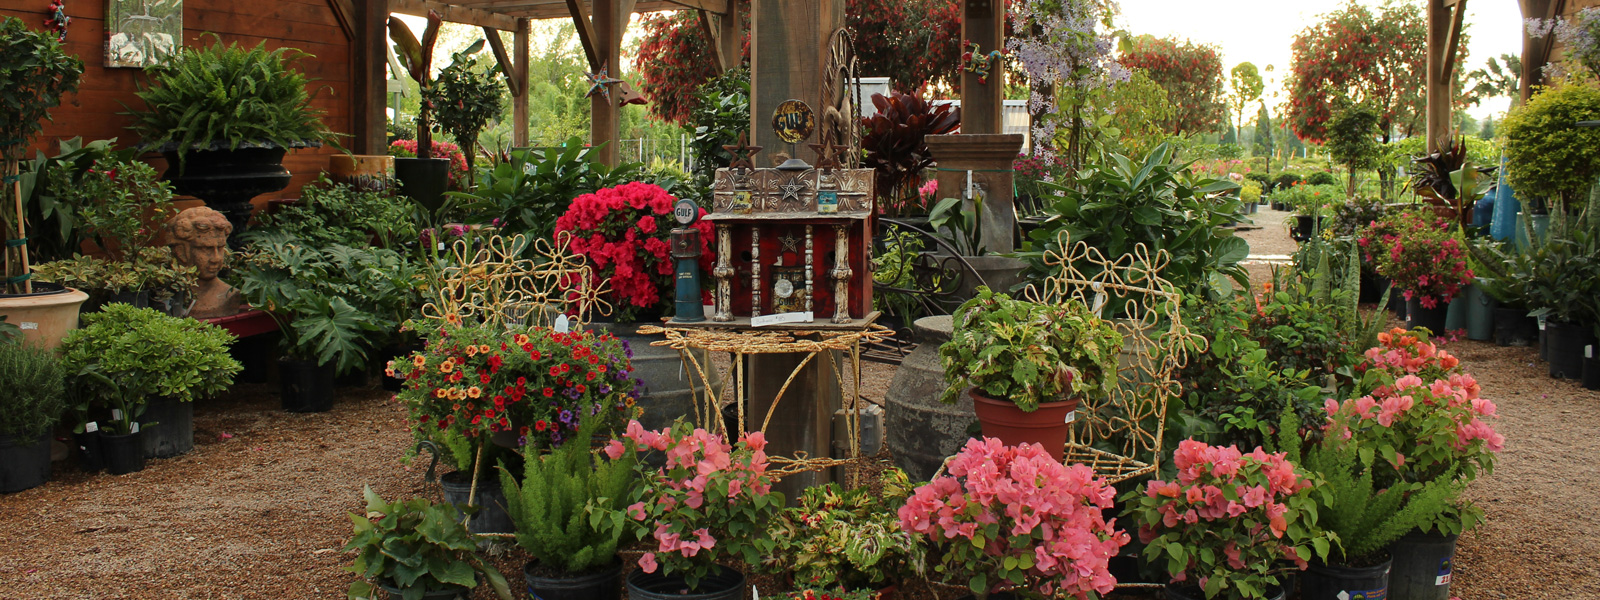 Houston Location - Shades of Texas Nursery & Landscaping - The ...